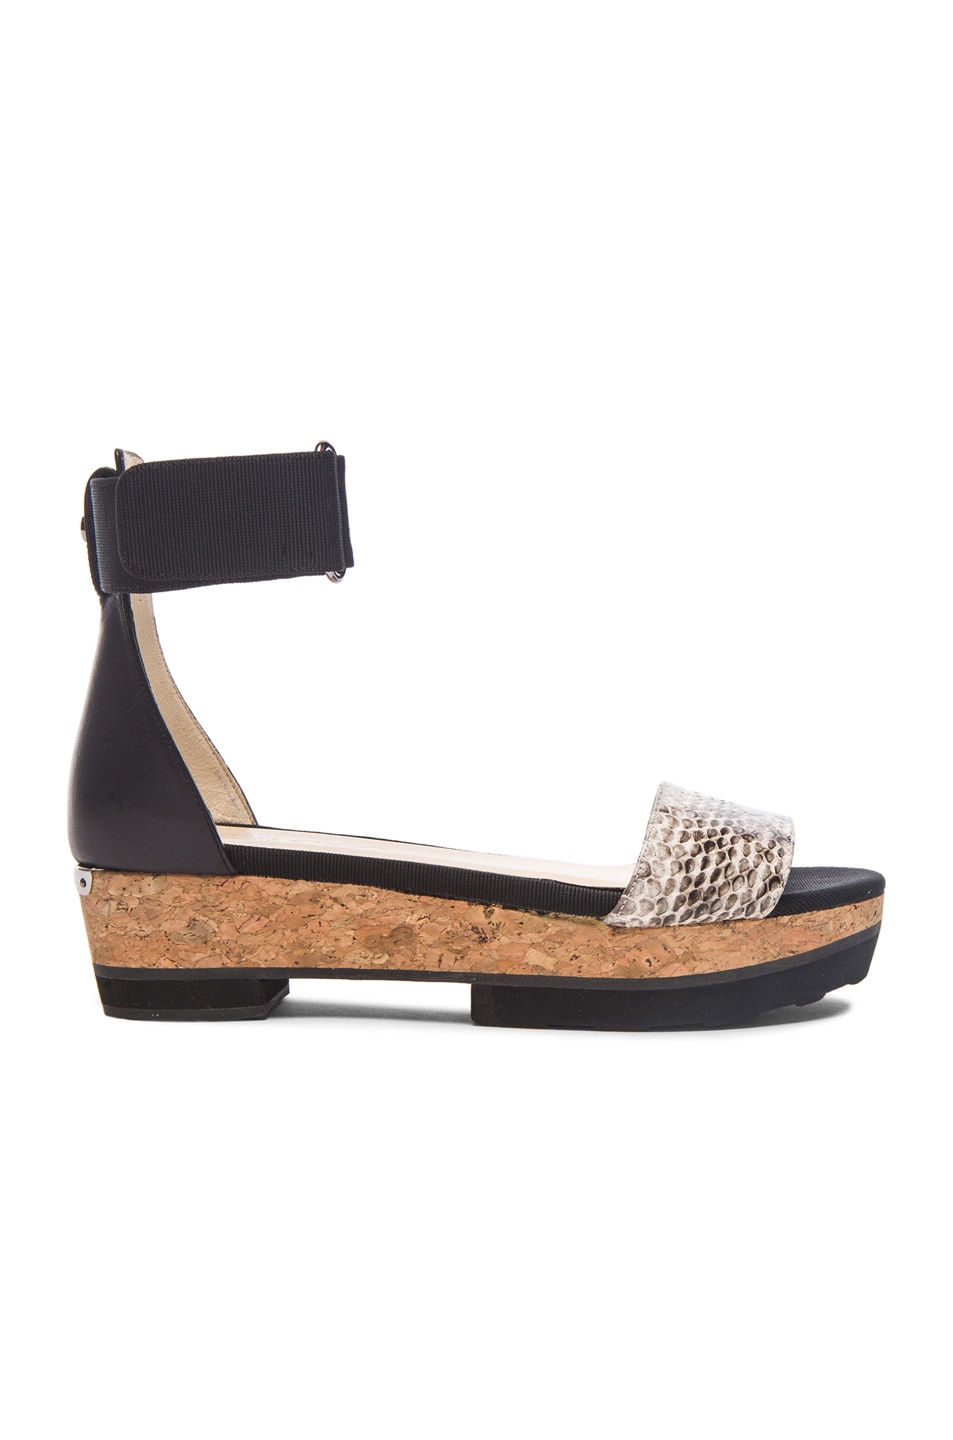 Image 1 of Jimmy Choo Neat Snakeskin and Grosgrain Sandals in Black & Natural